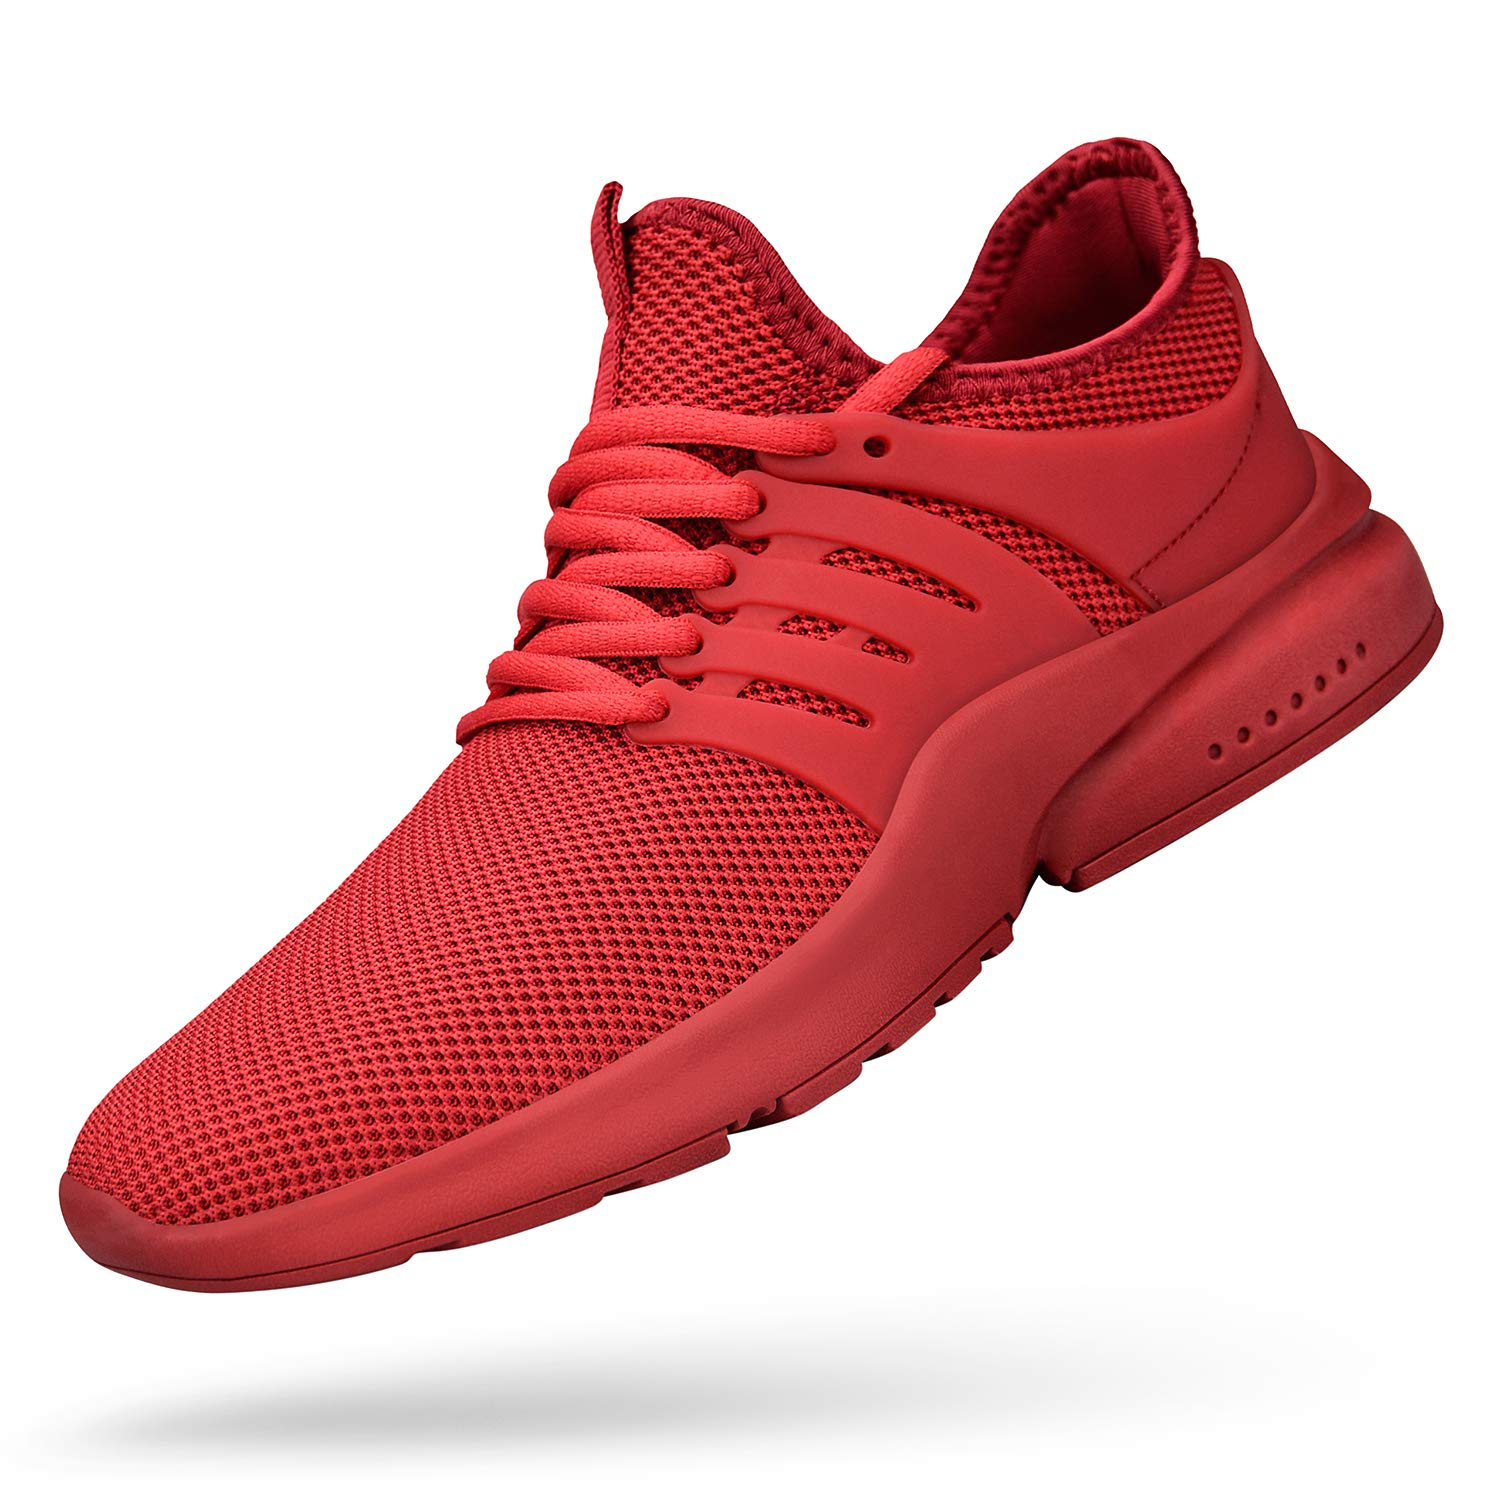 Feetmat Mens Walking Outdoor Lightweight Breathable Shoes Red Running Shoes for Boys Gym Athletics Tennis Sneakers Red 7.5M ... by Feetmat